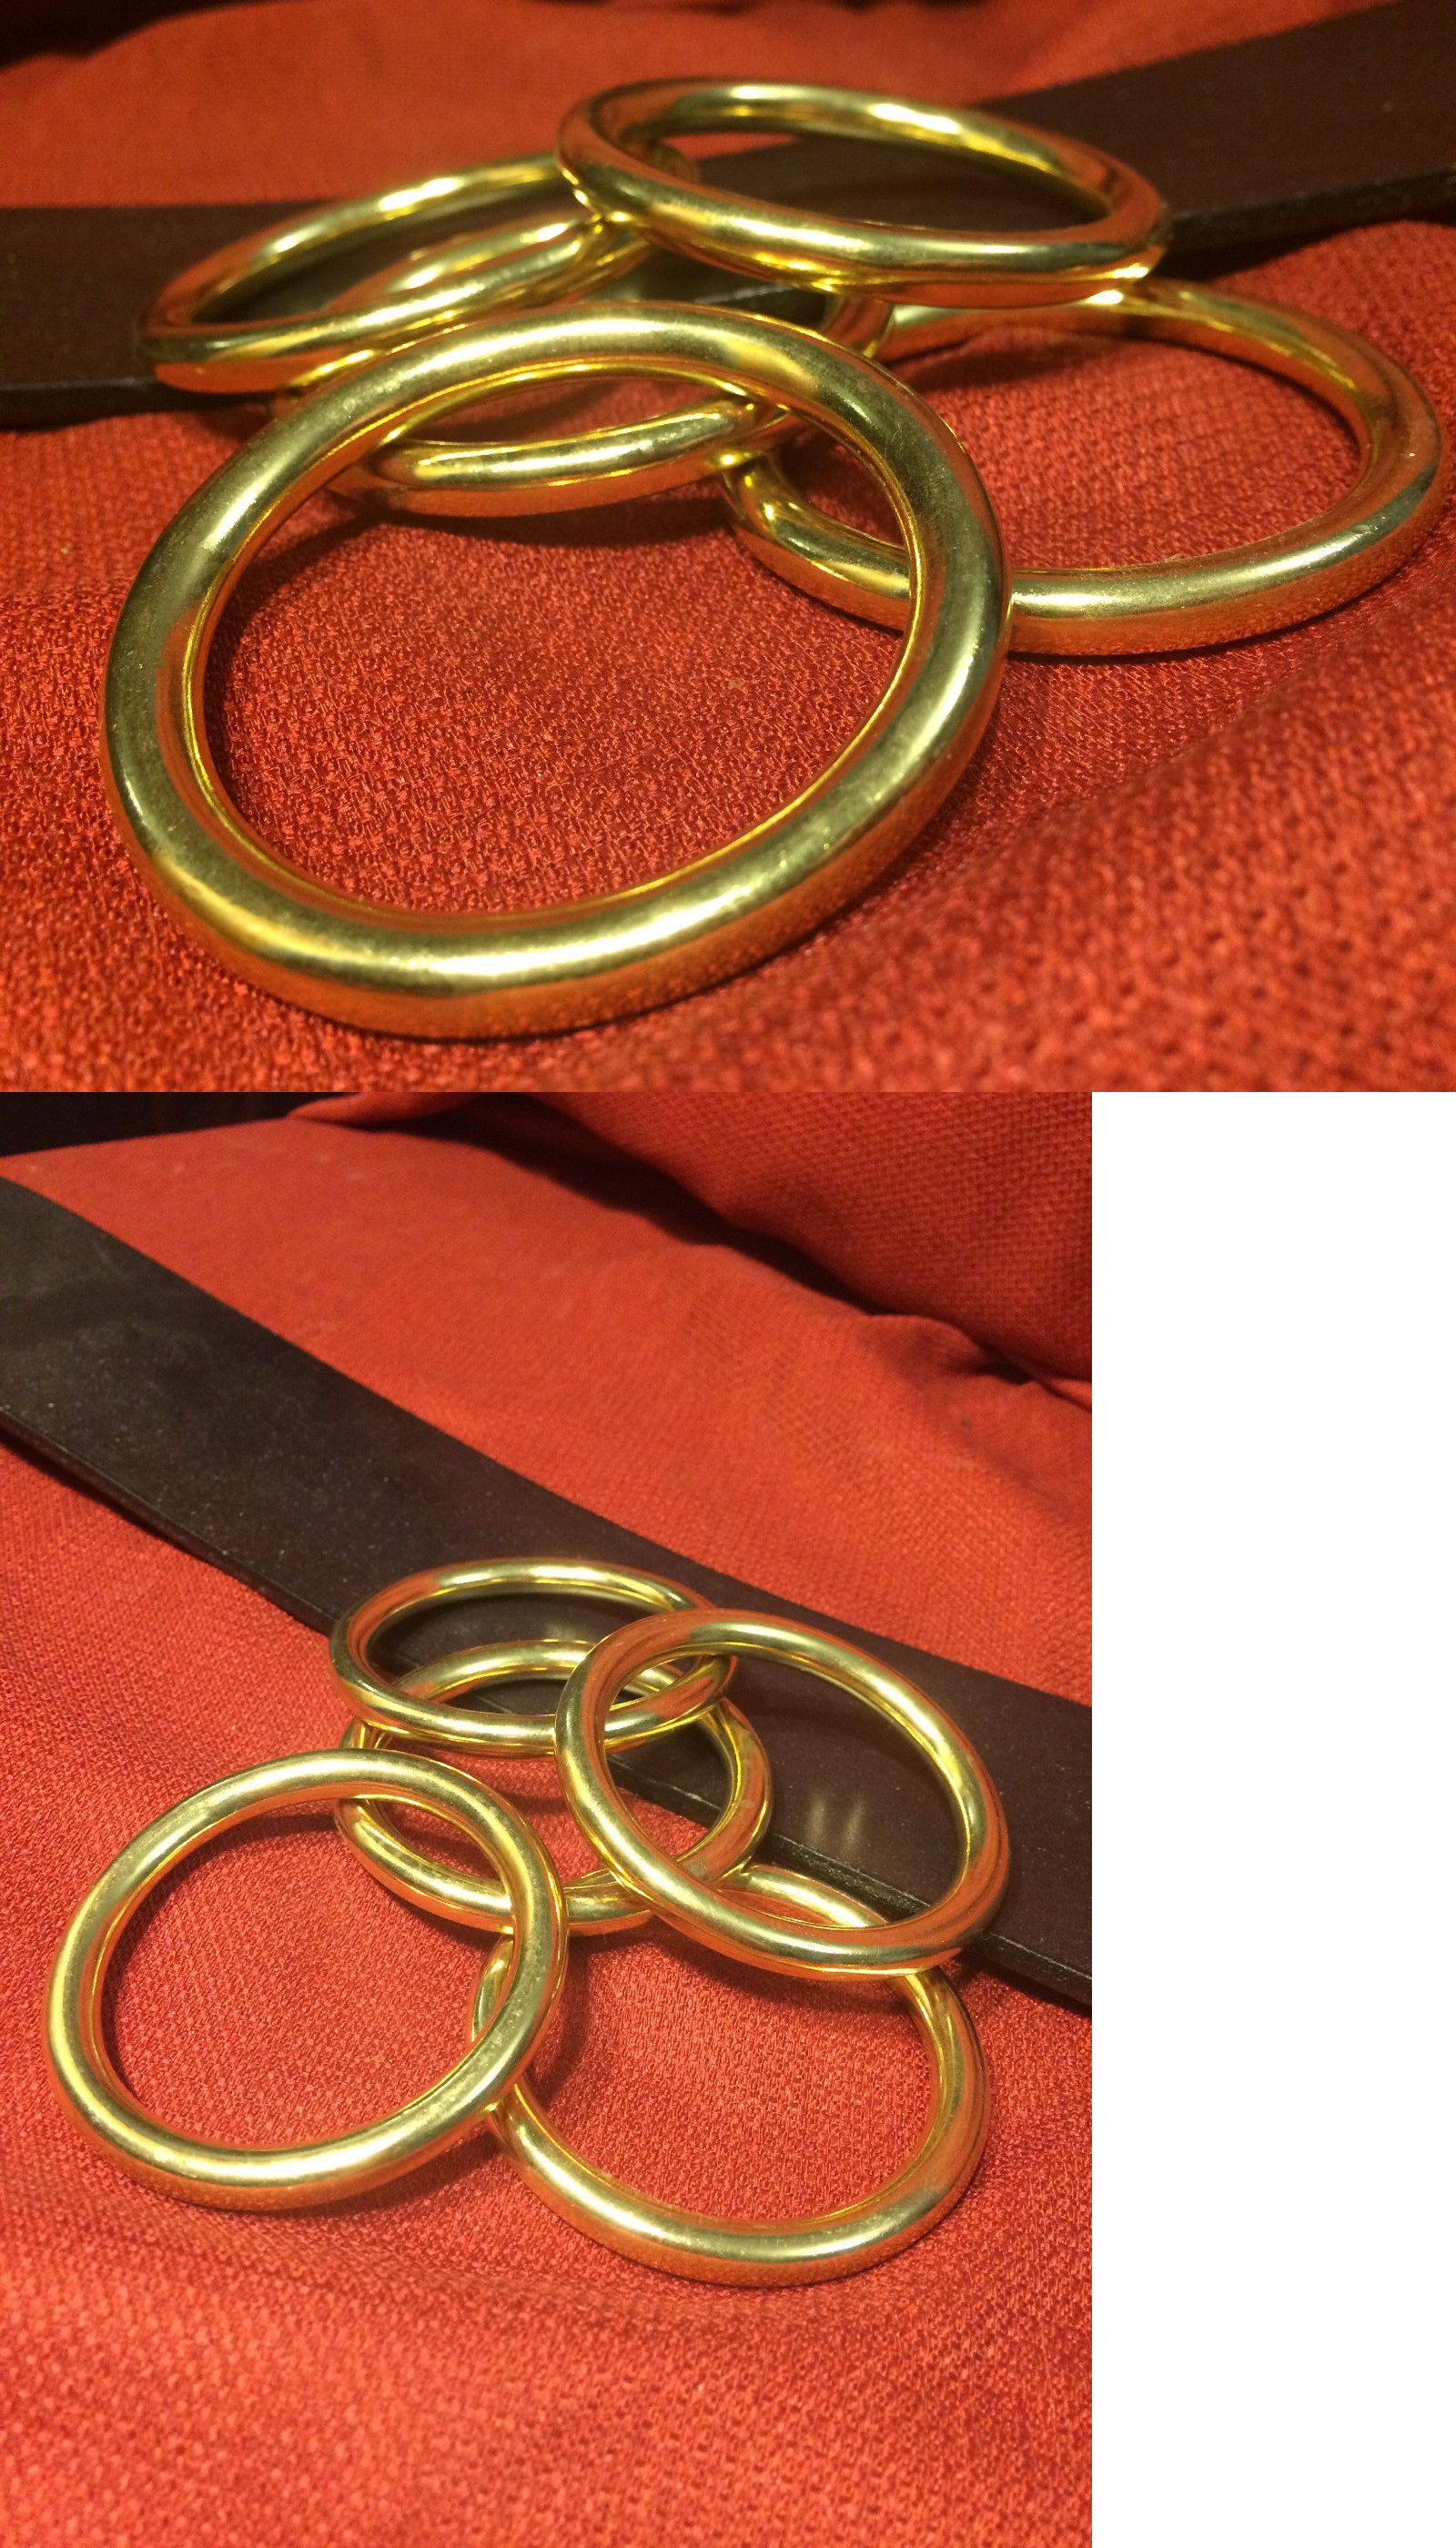 Buckles 134571: 1.5 I.D. Solid Brass O Rings For Belts Tack Sca Larp ...